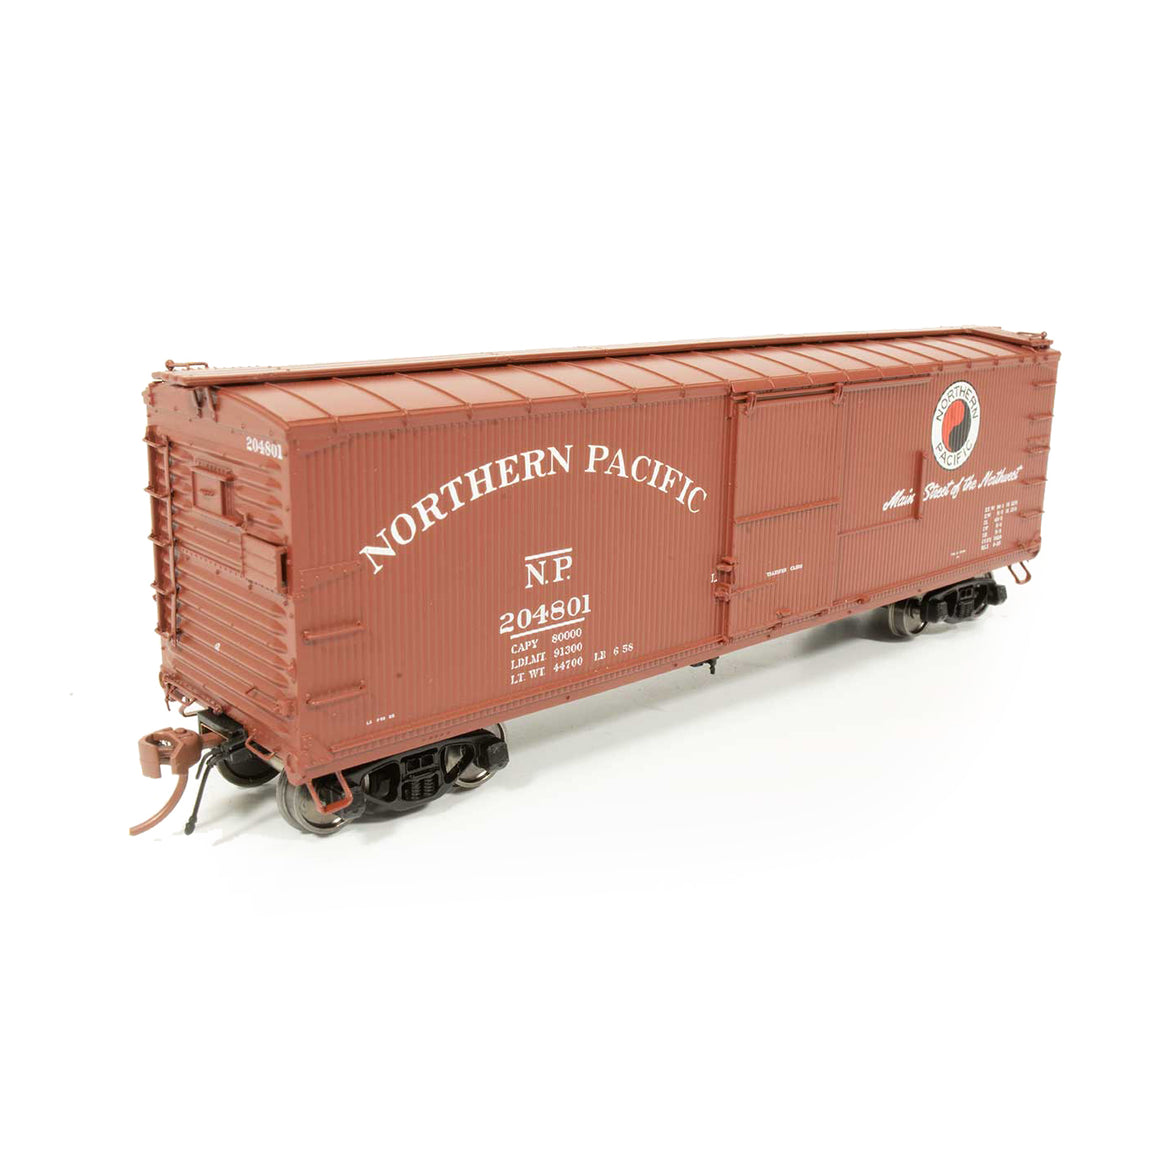 HO Scale: Northern Pacific 10000-Series Boxcar - 'Company Service'